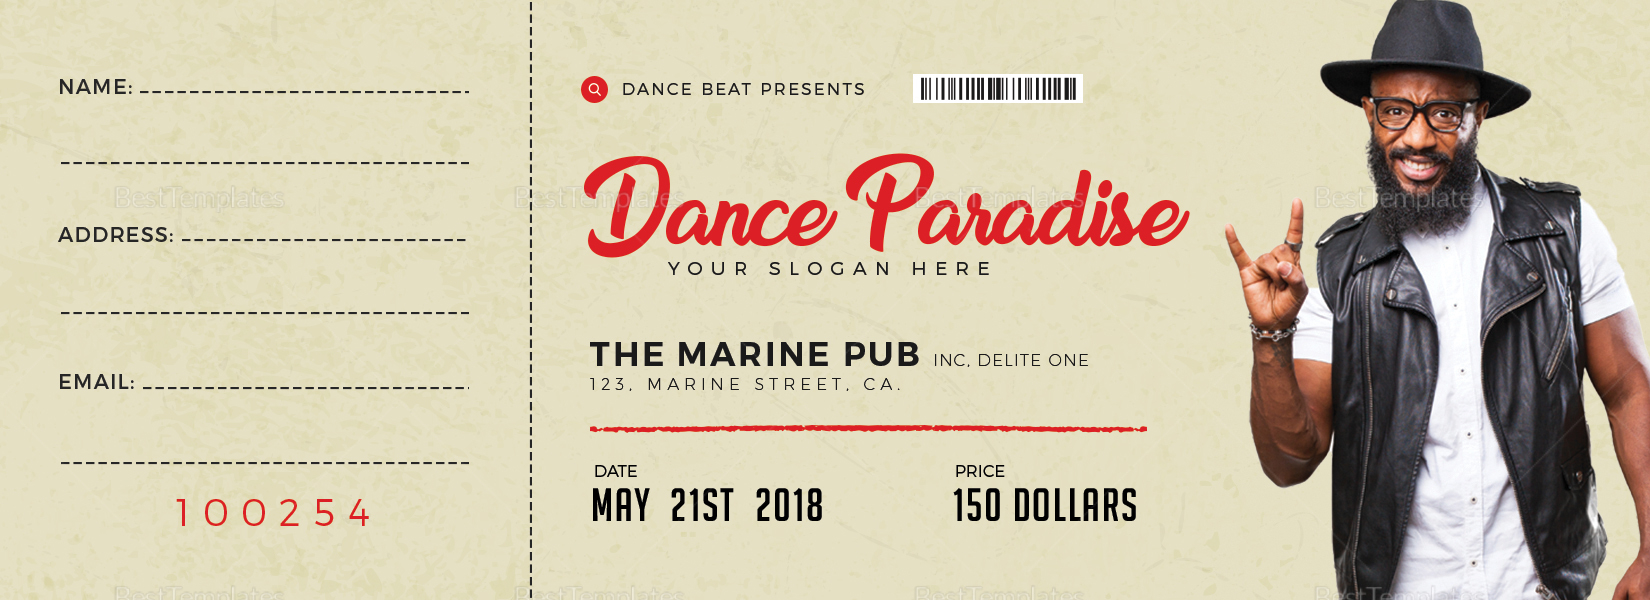 dance event ticket design template in psd  word  publisher